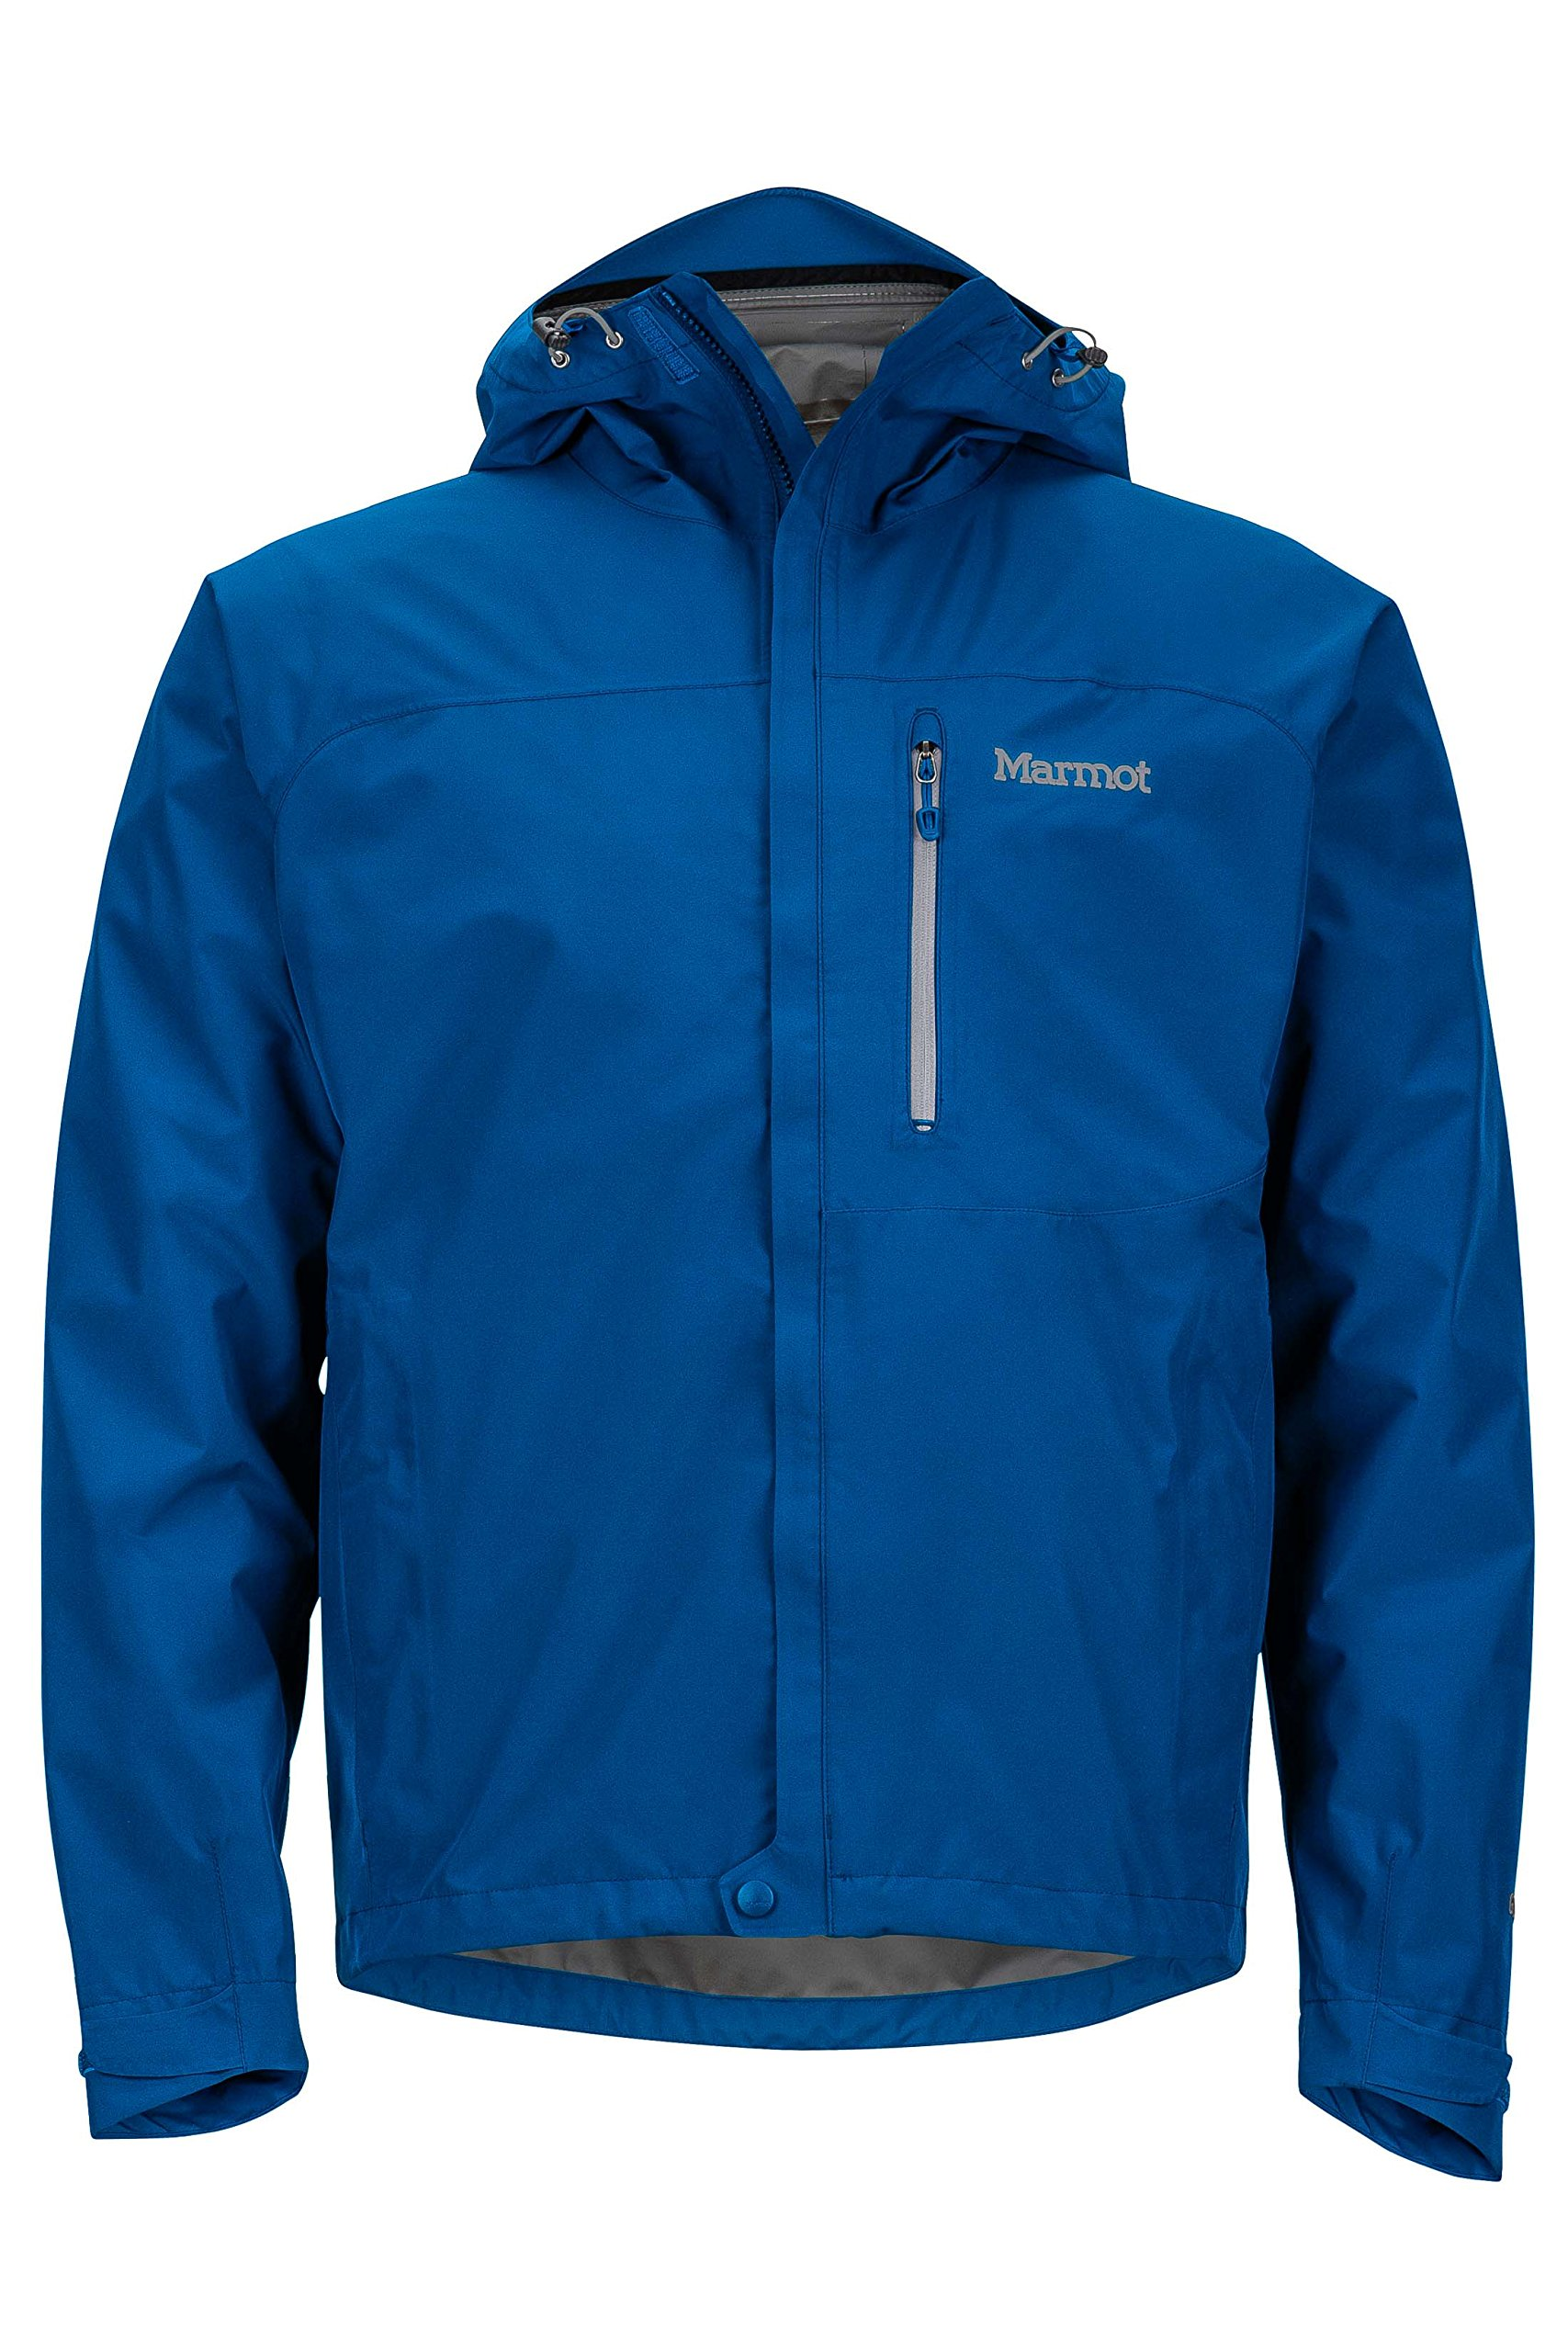 Marmot Minimalist Men's Lightweight Waterproof Rain Jacket, GORE-TEX with PACLITE Technology, Large, Blue Sapphire by Marmot